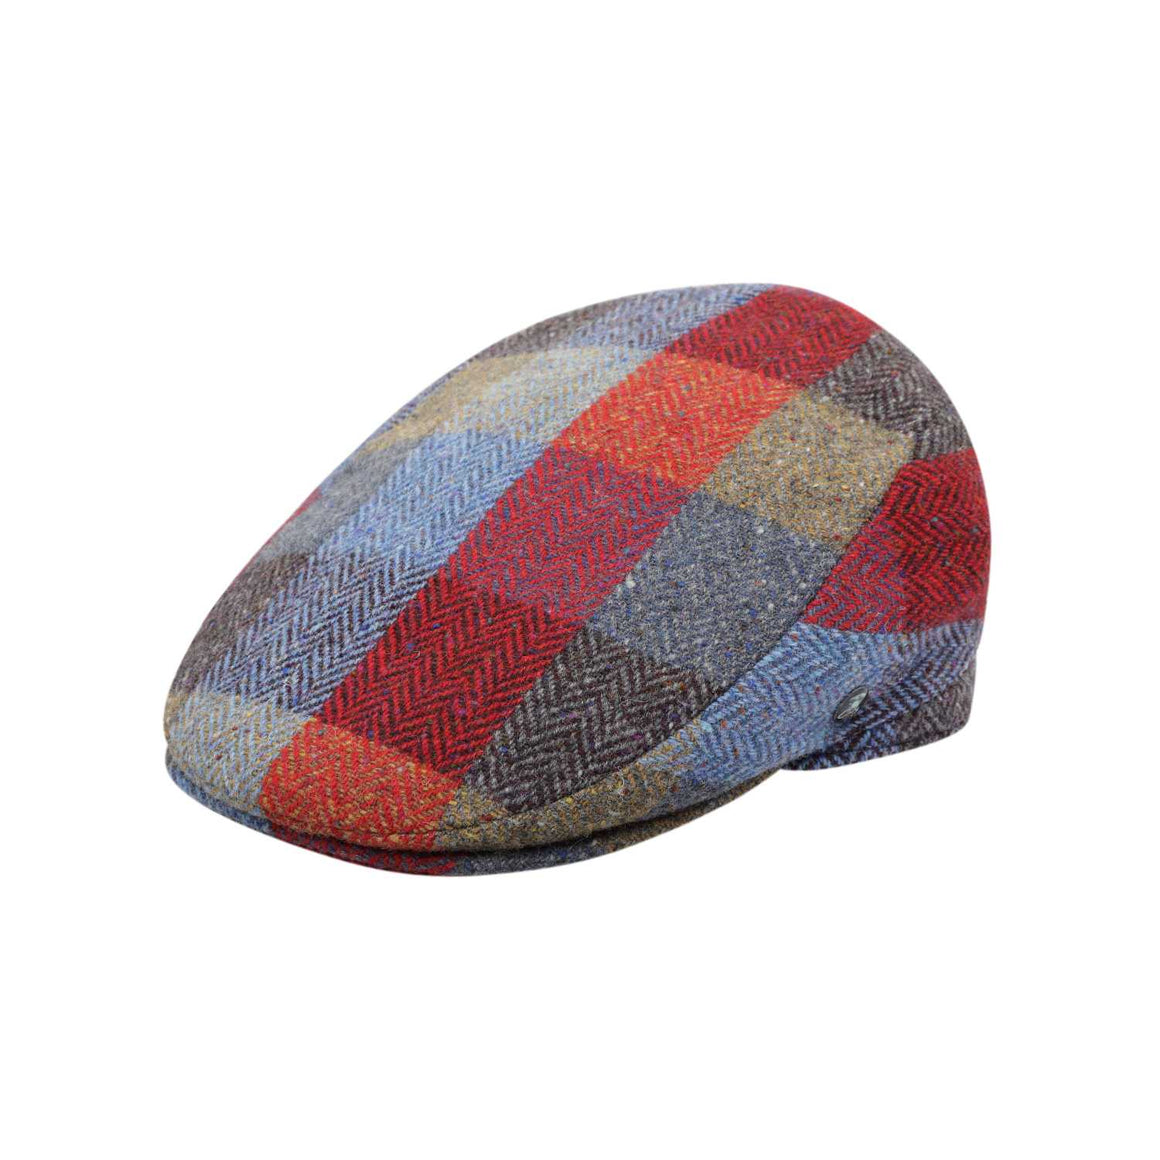 The Cashmere Choice - City Sport - Extended Peak - Donegal Tweed Flat Cap - Red Blue Grey Herringbone 3463